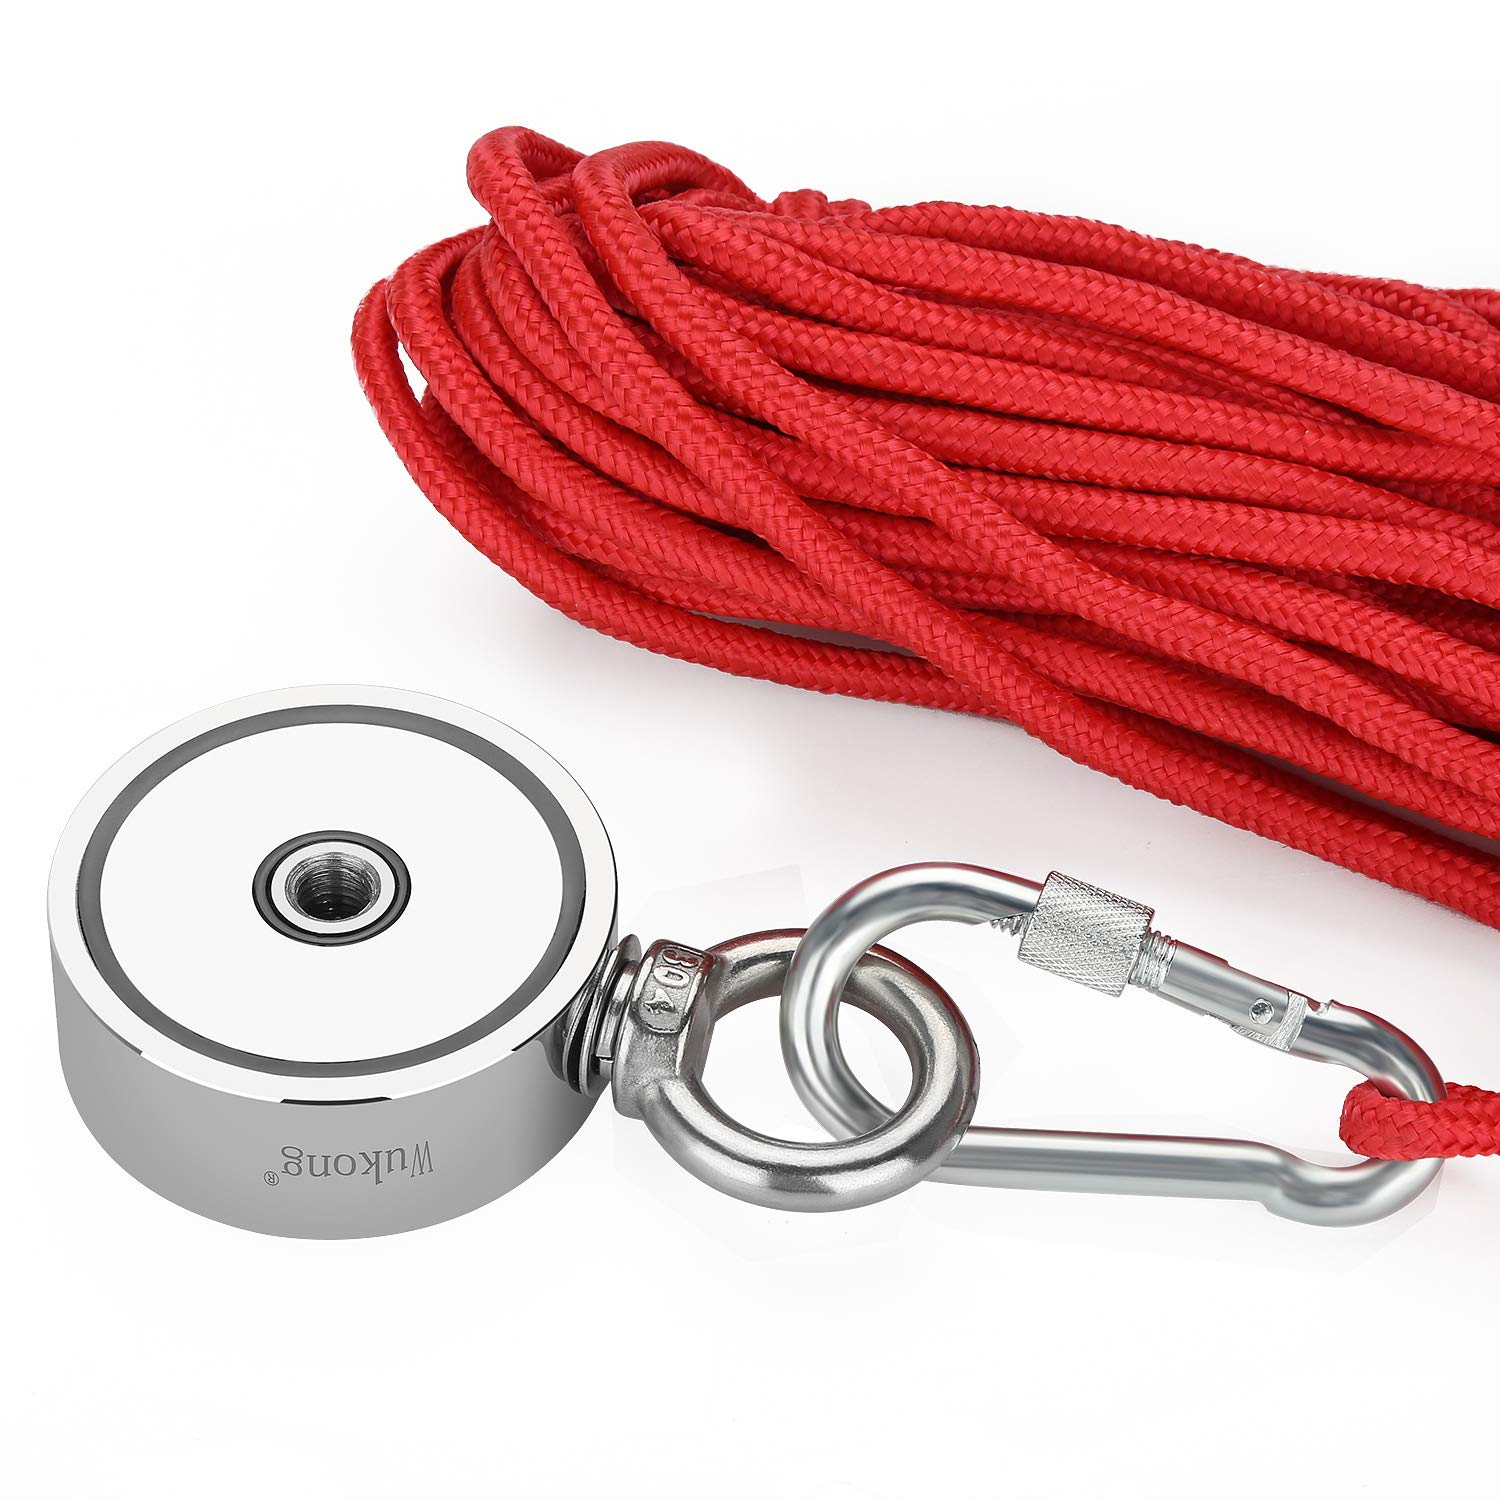 Fishing Magnet with 66ft Rope & Glove, Wukong 760LB Pulling Force Super Strong Neodymium Magnet with Heavy Duty Rope & Carabiner for Magnet Fishing and Retrieving in River - 67mm Diameter by Wukong (Image #6)